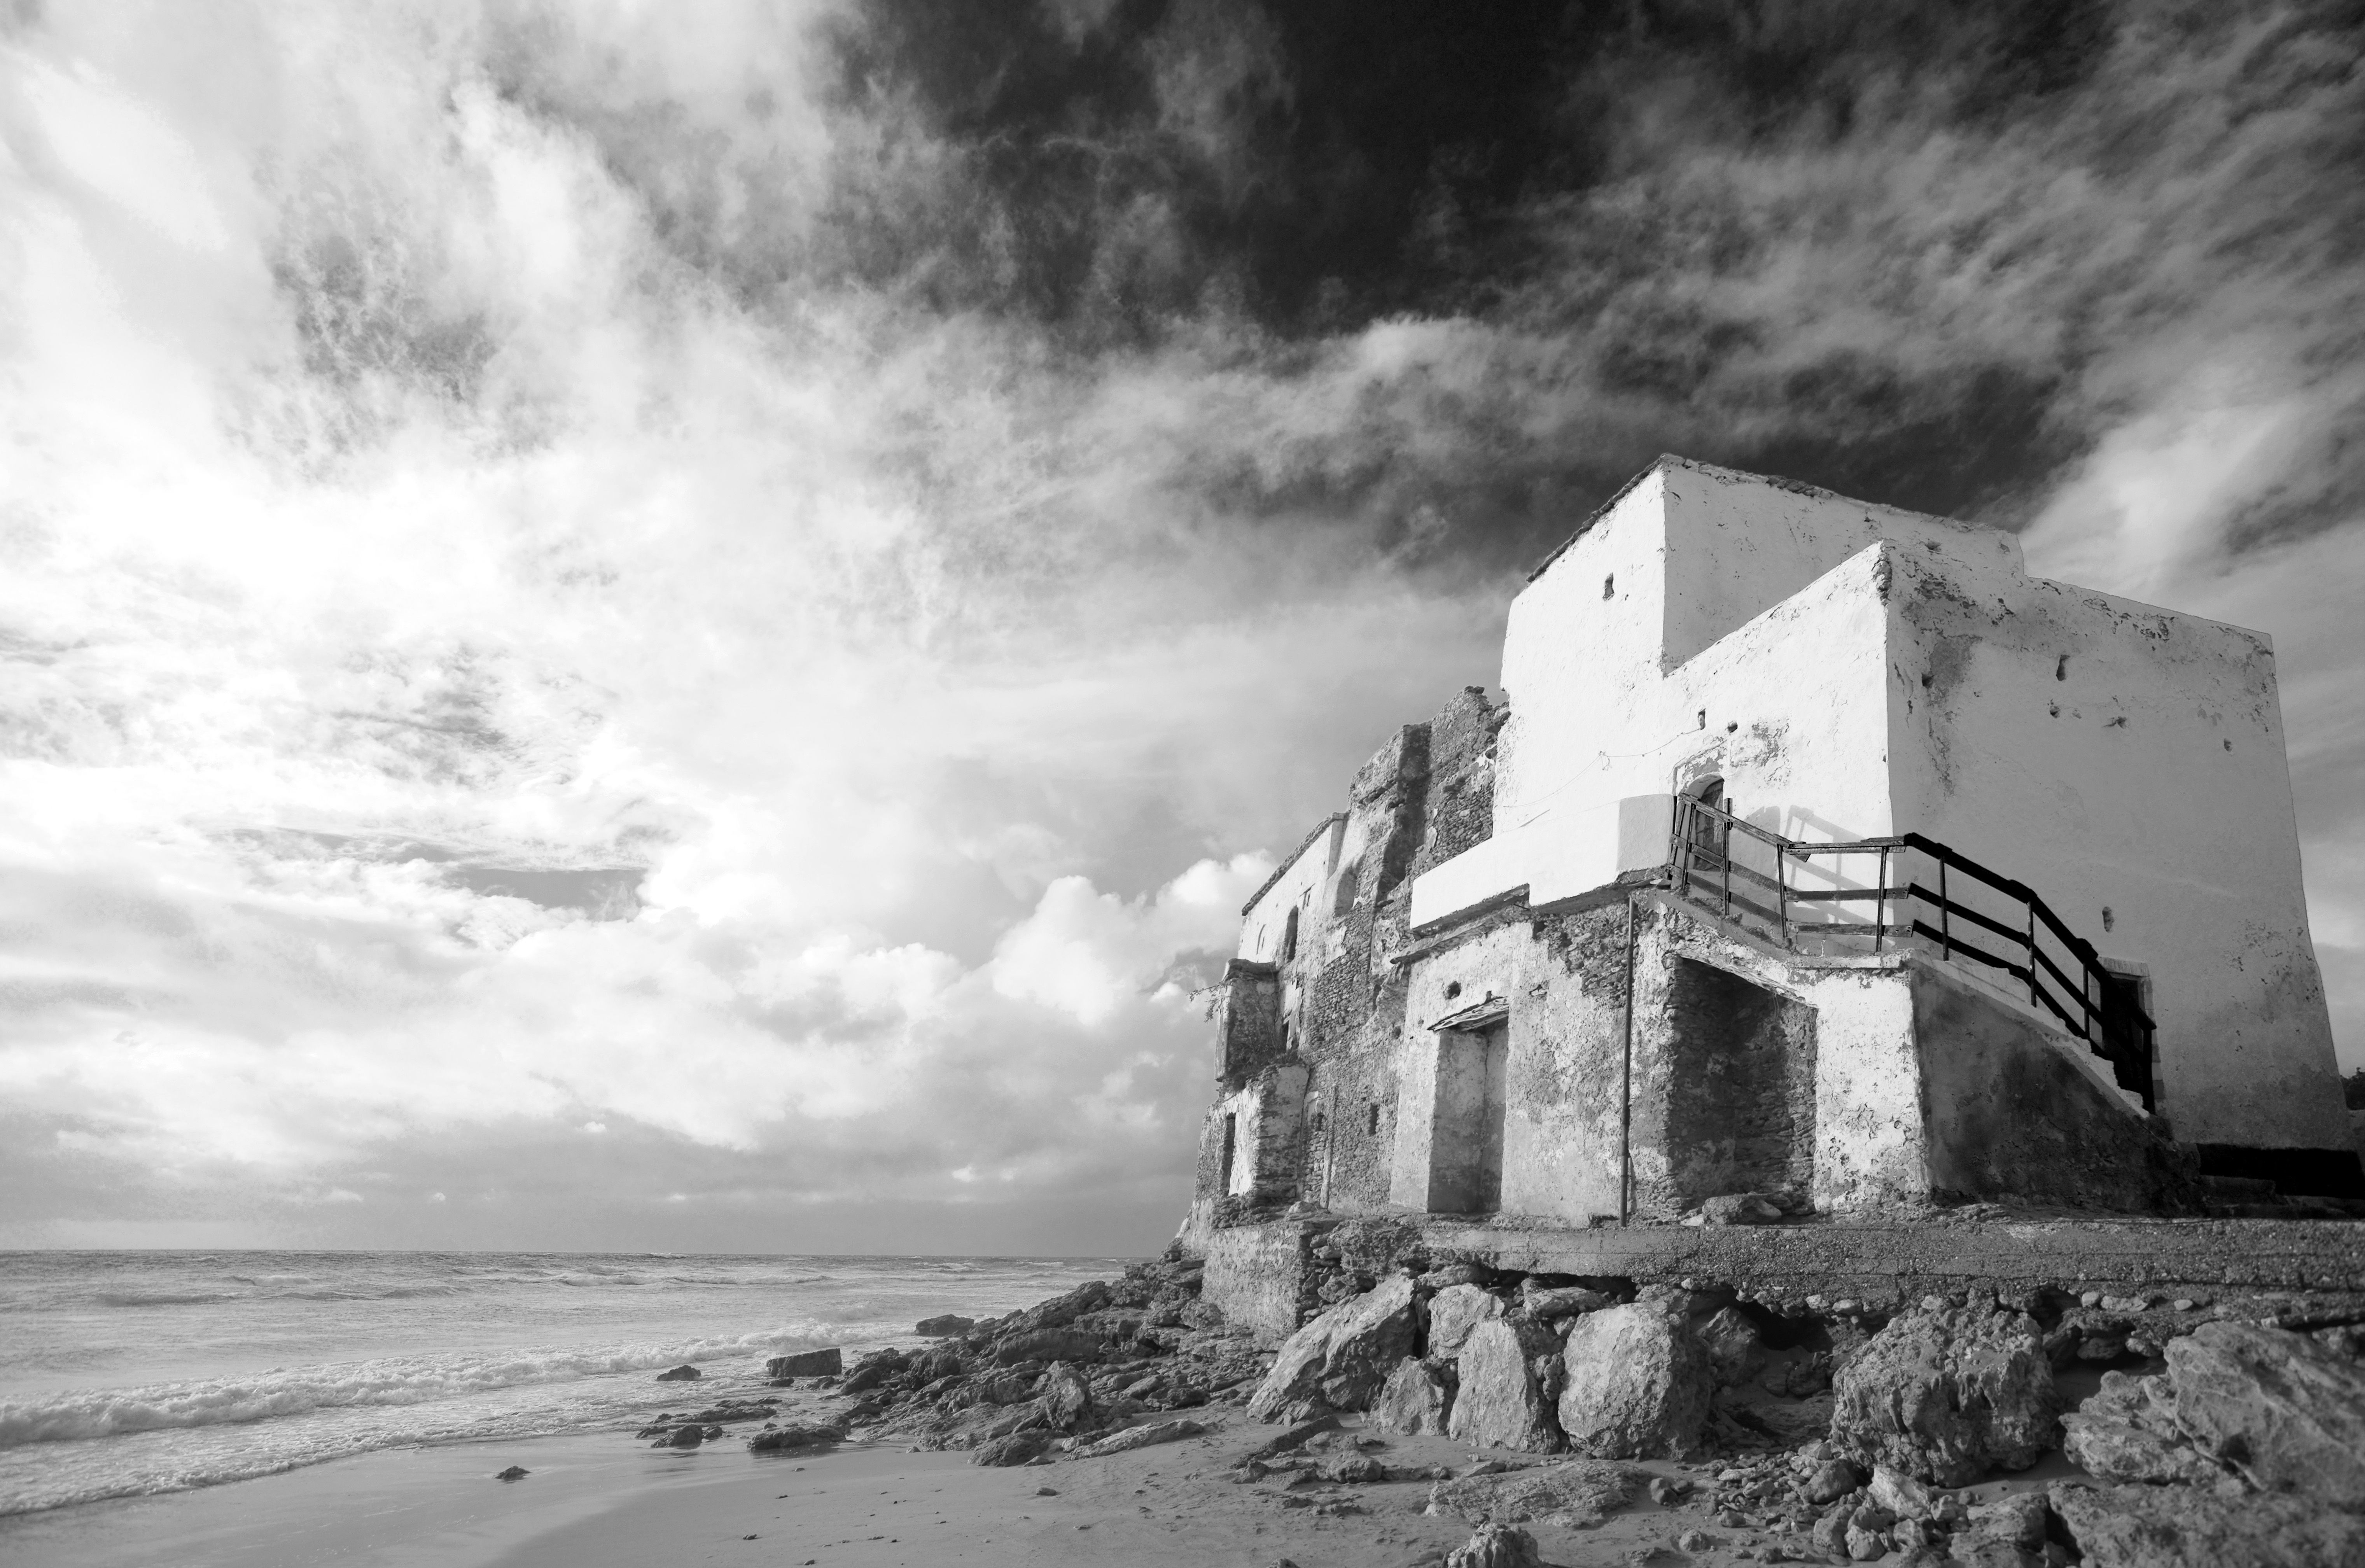 Nigel Barker Photography presents Beach Ruin in black and white